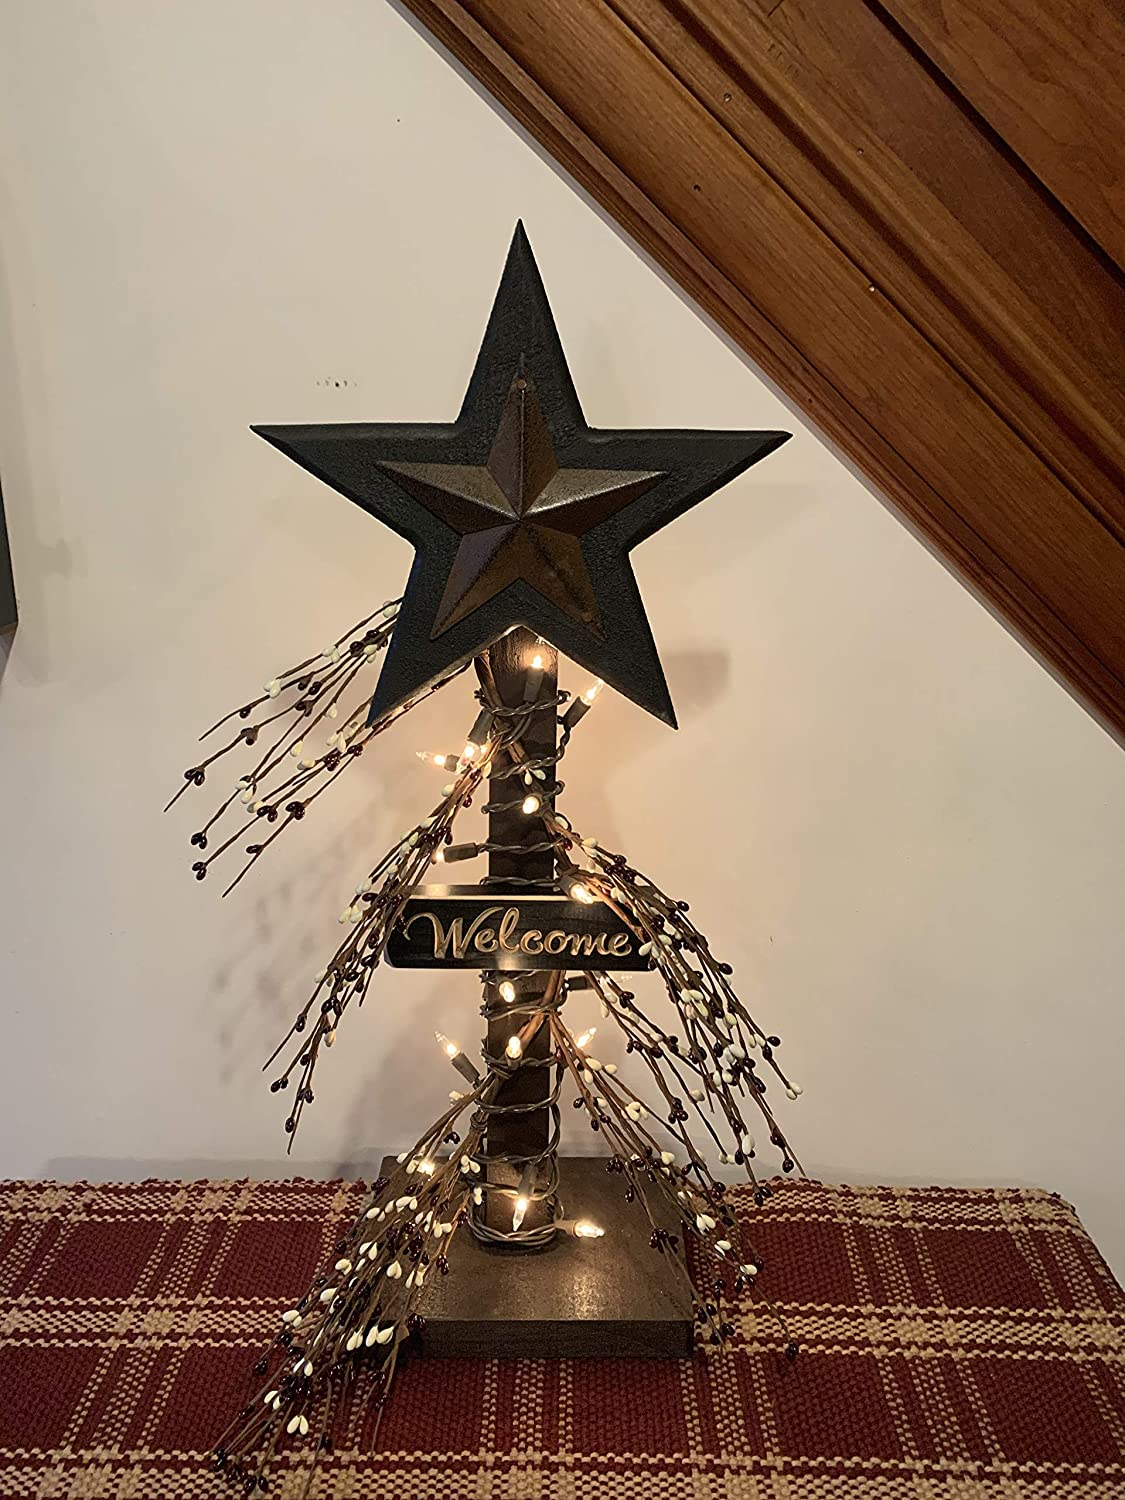 Wood Star Lighted Pip Berries Table Top Home Decor Primitive Farmhouse Lighting Country White Lights Rustic Home Furniture Burgundy and Cream Pip Berries Metal Star